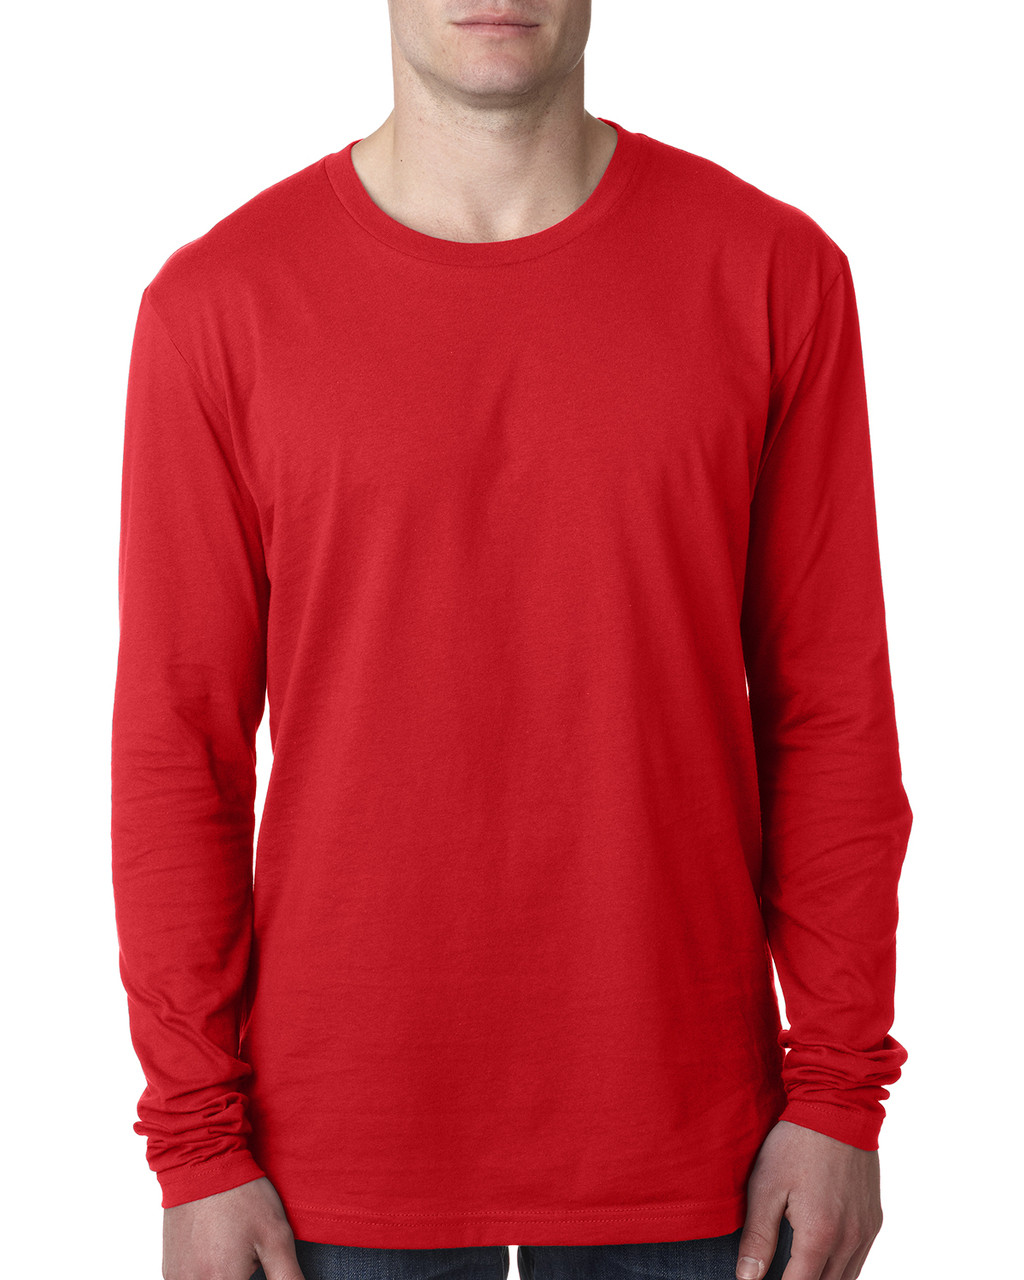 Red - N3601 Next Level Men's Premium Fitted Long Sleeve Crew Tee | Blankclothing.ca